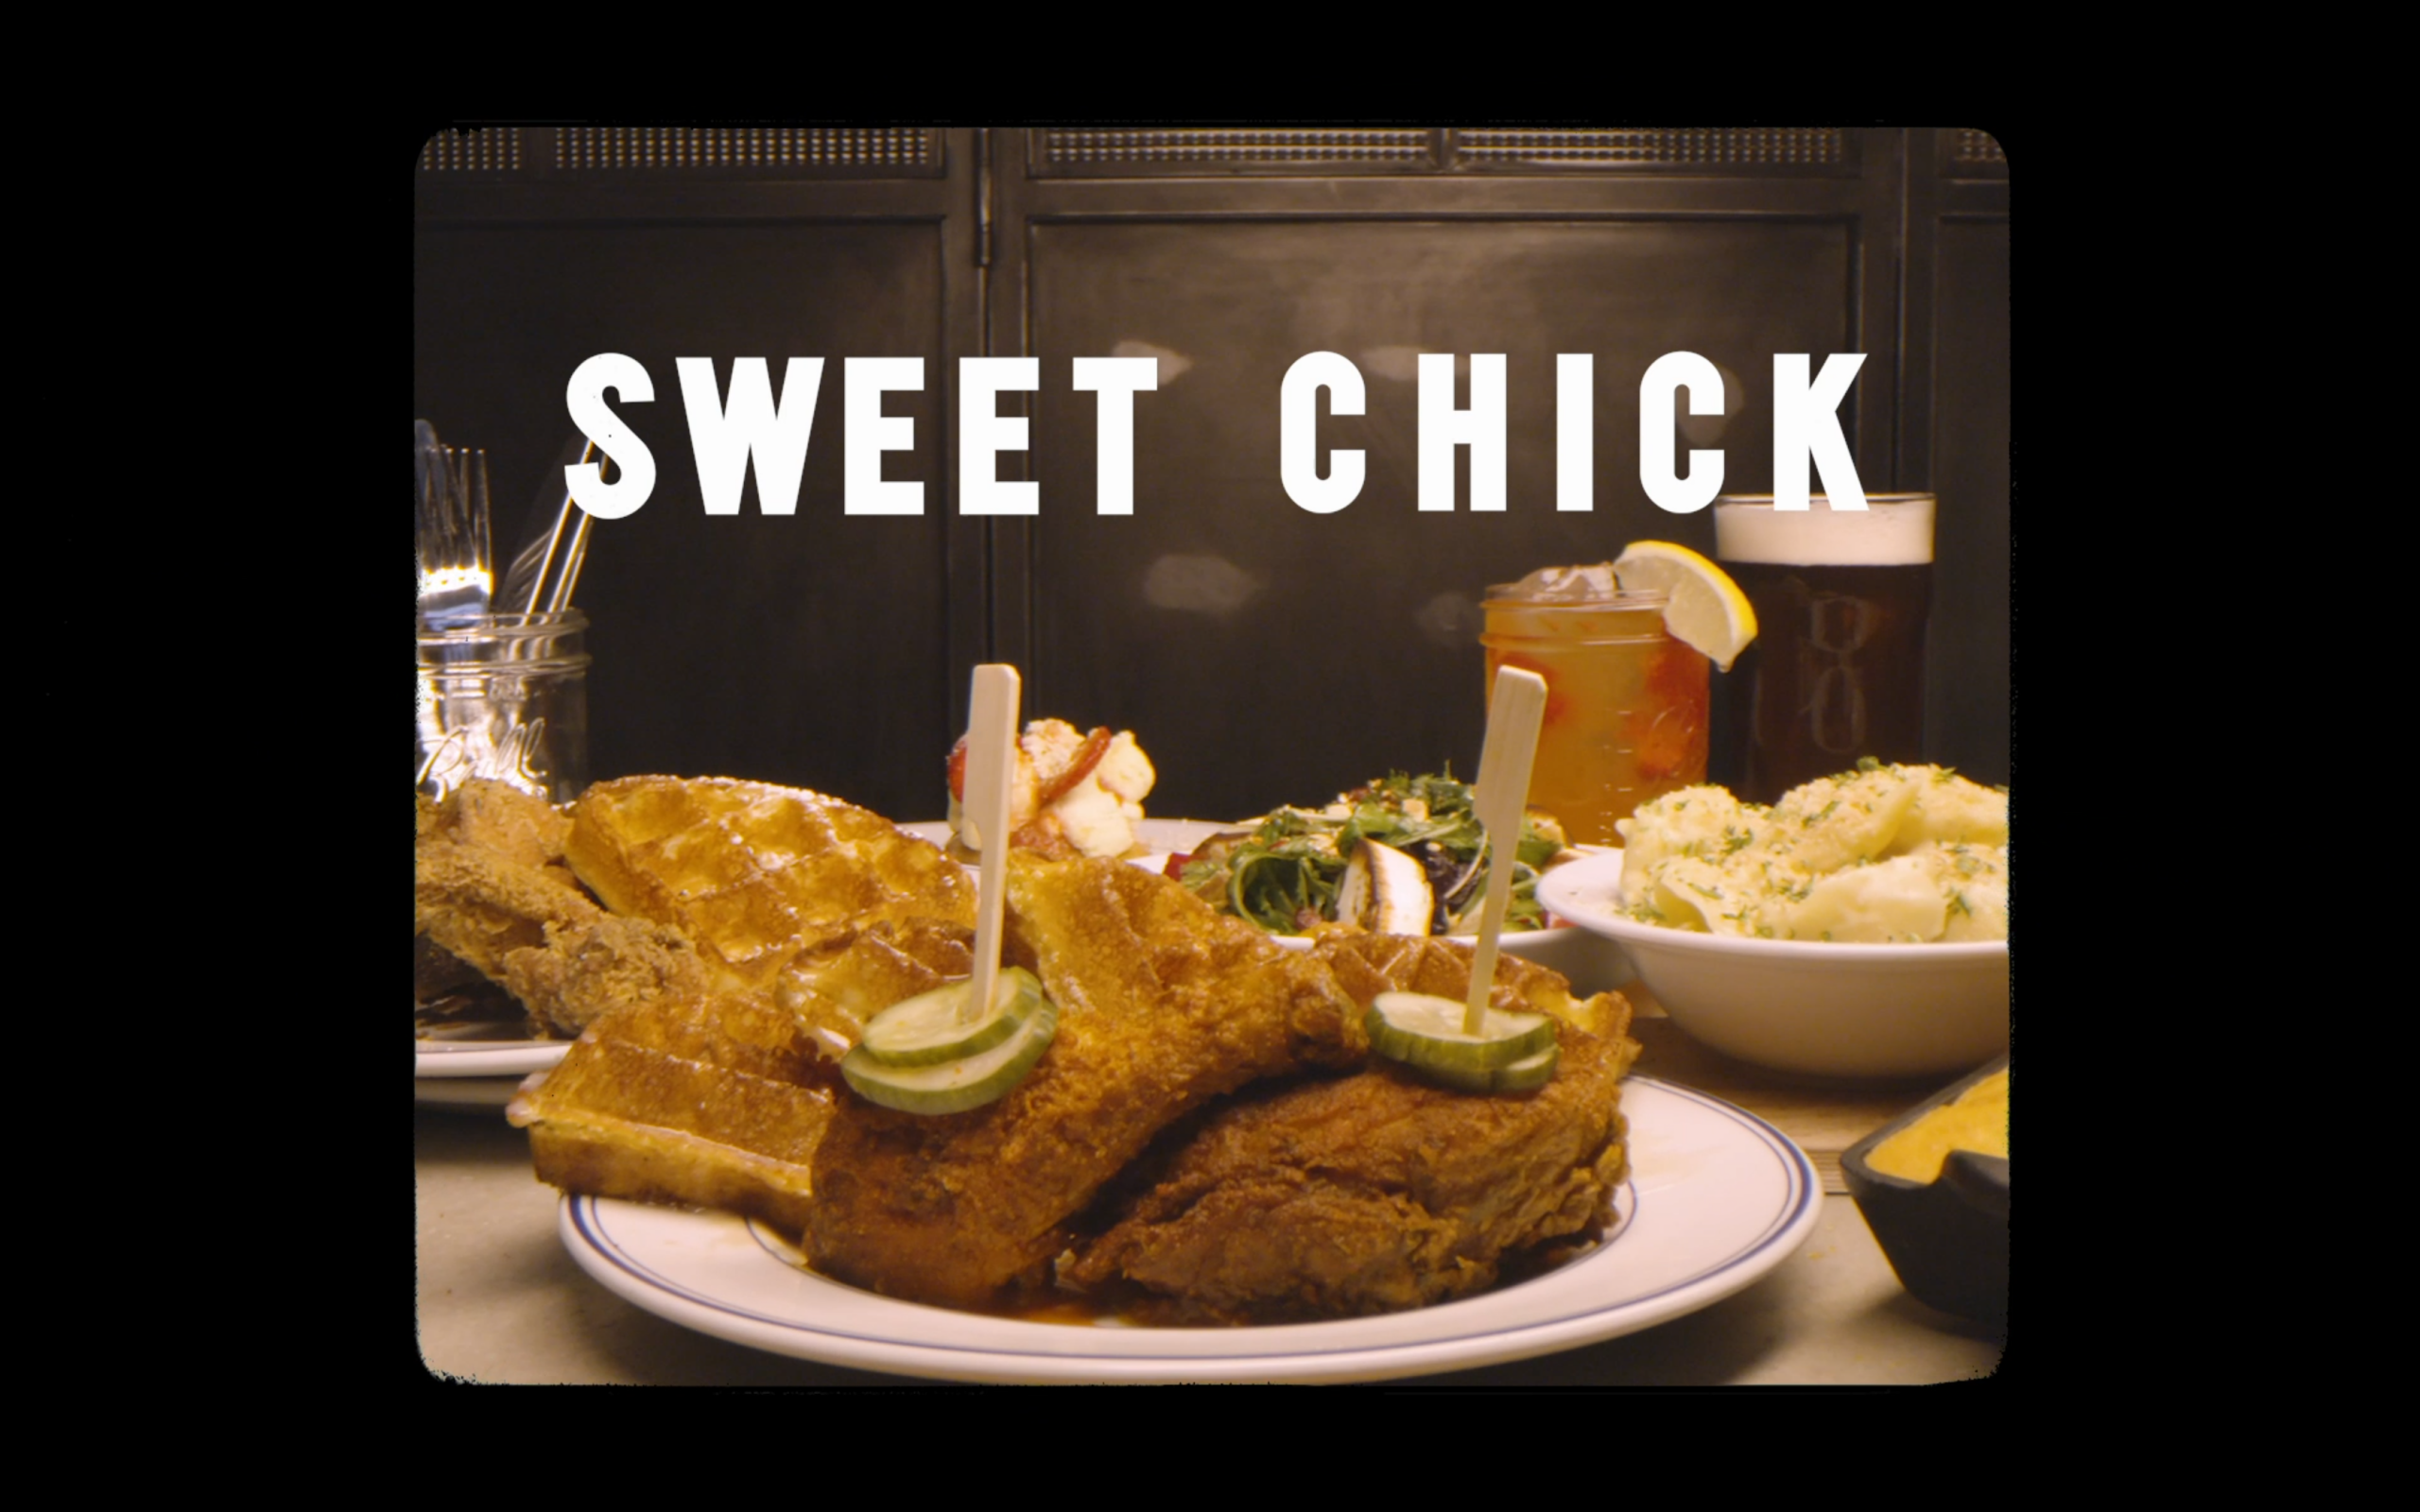 sweet chick food